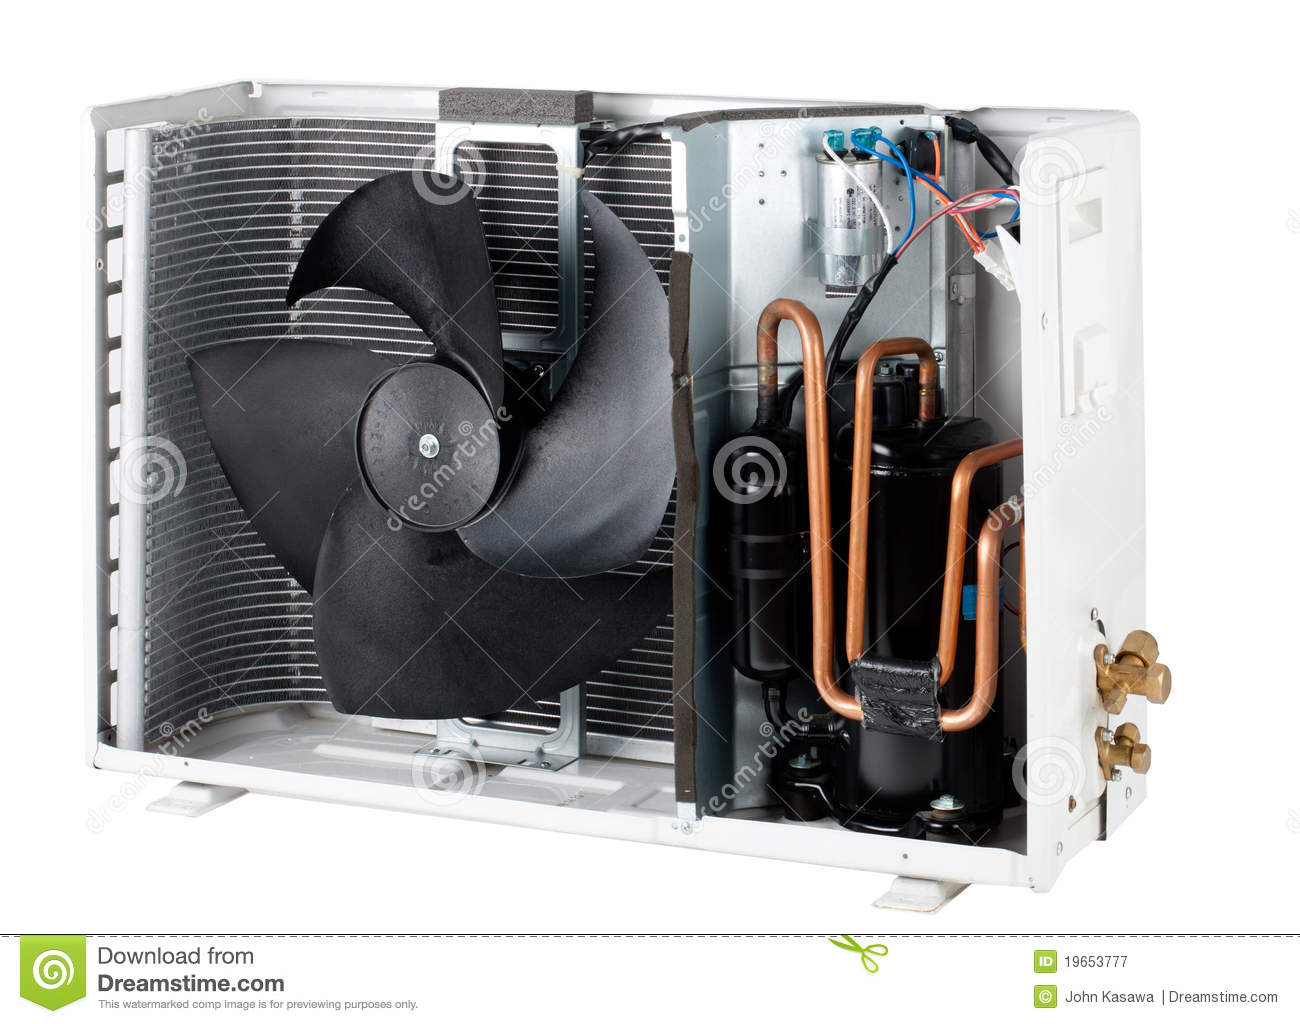 Ac Unit Prices >> Cross Section Inside The Air Condensing Unit Isola Royalty Free Stock Photography - Image: 19653777